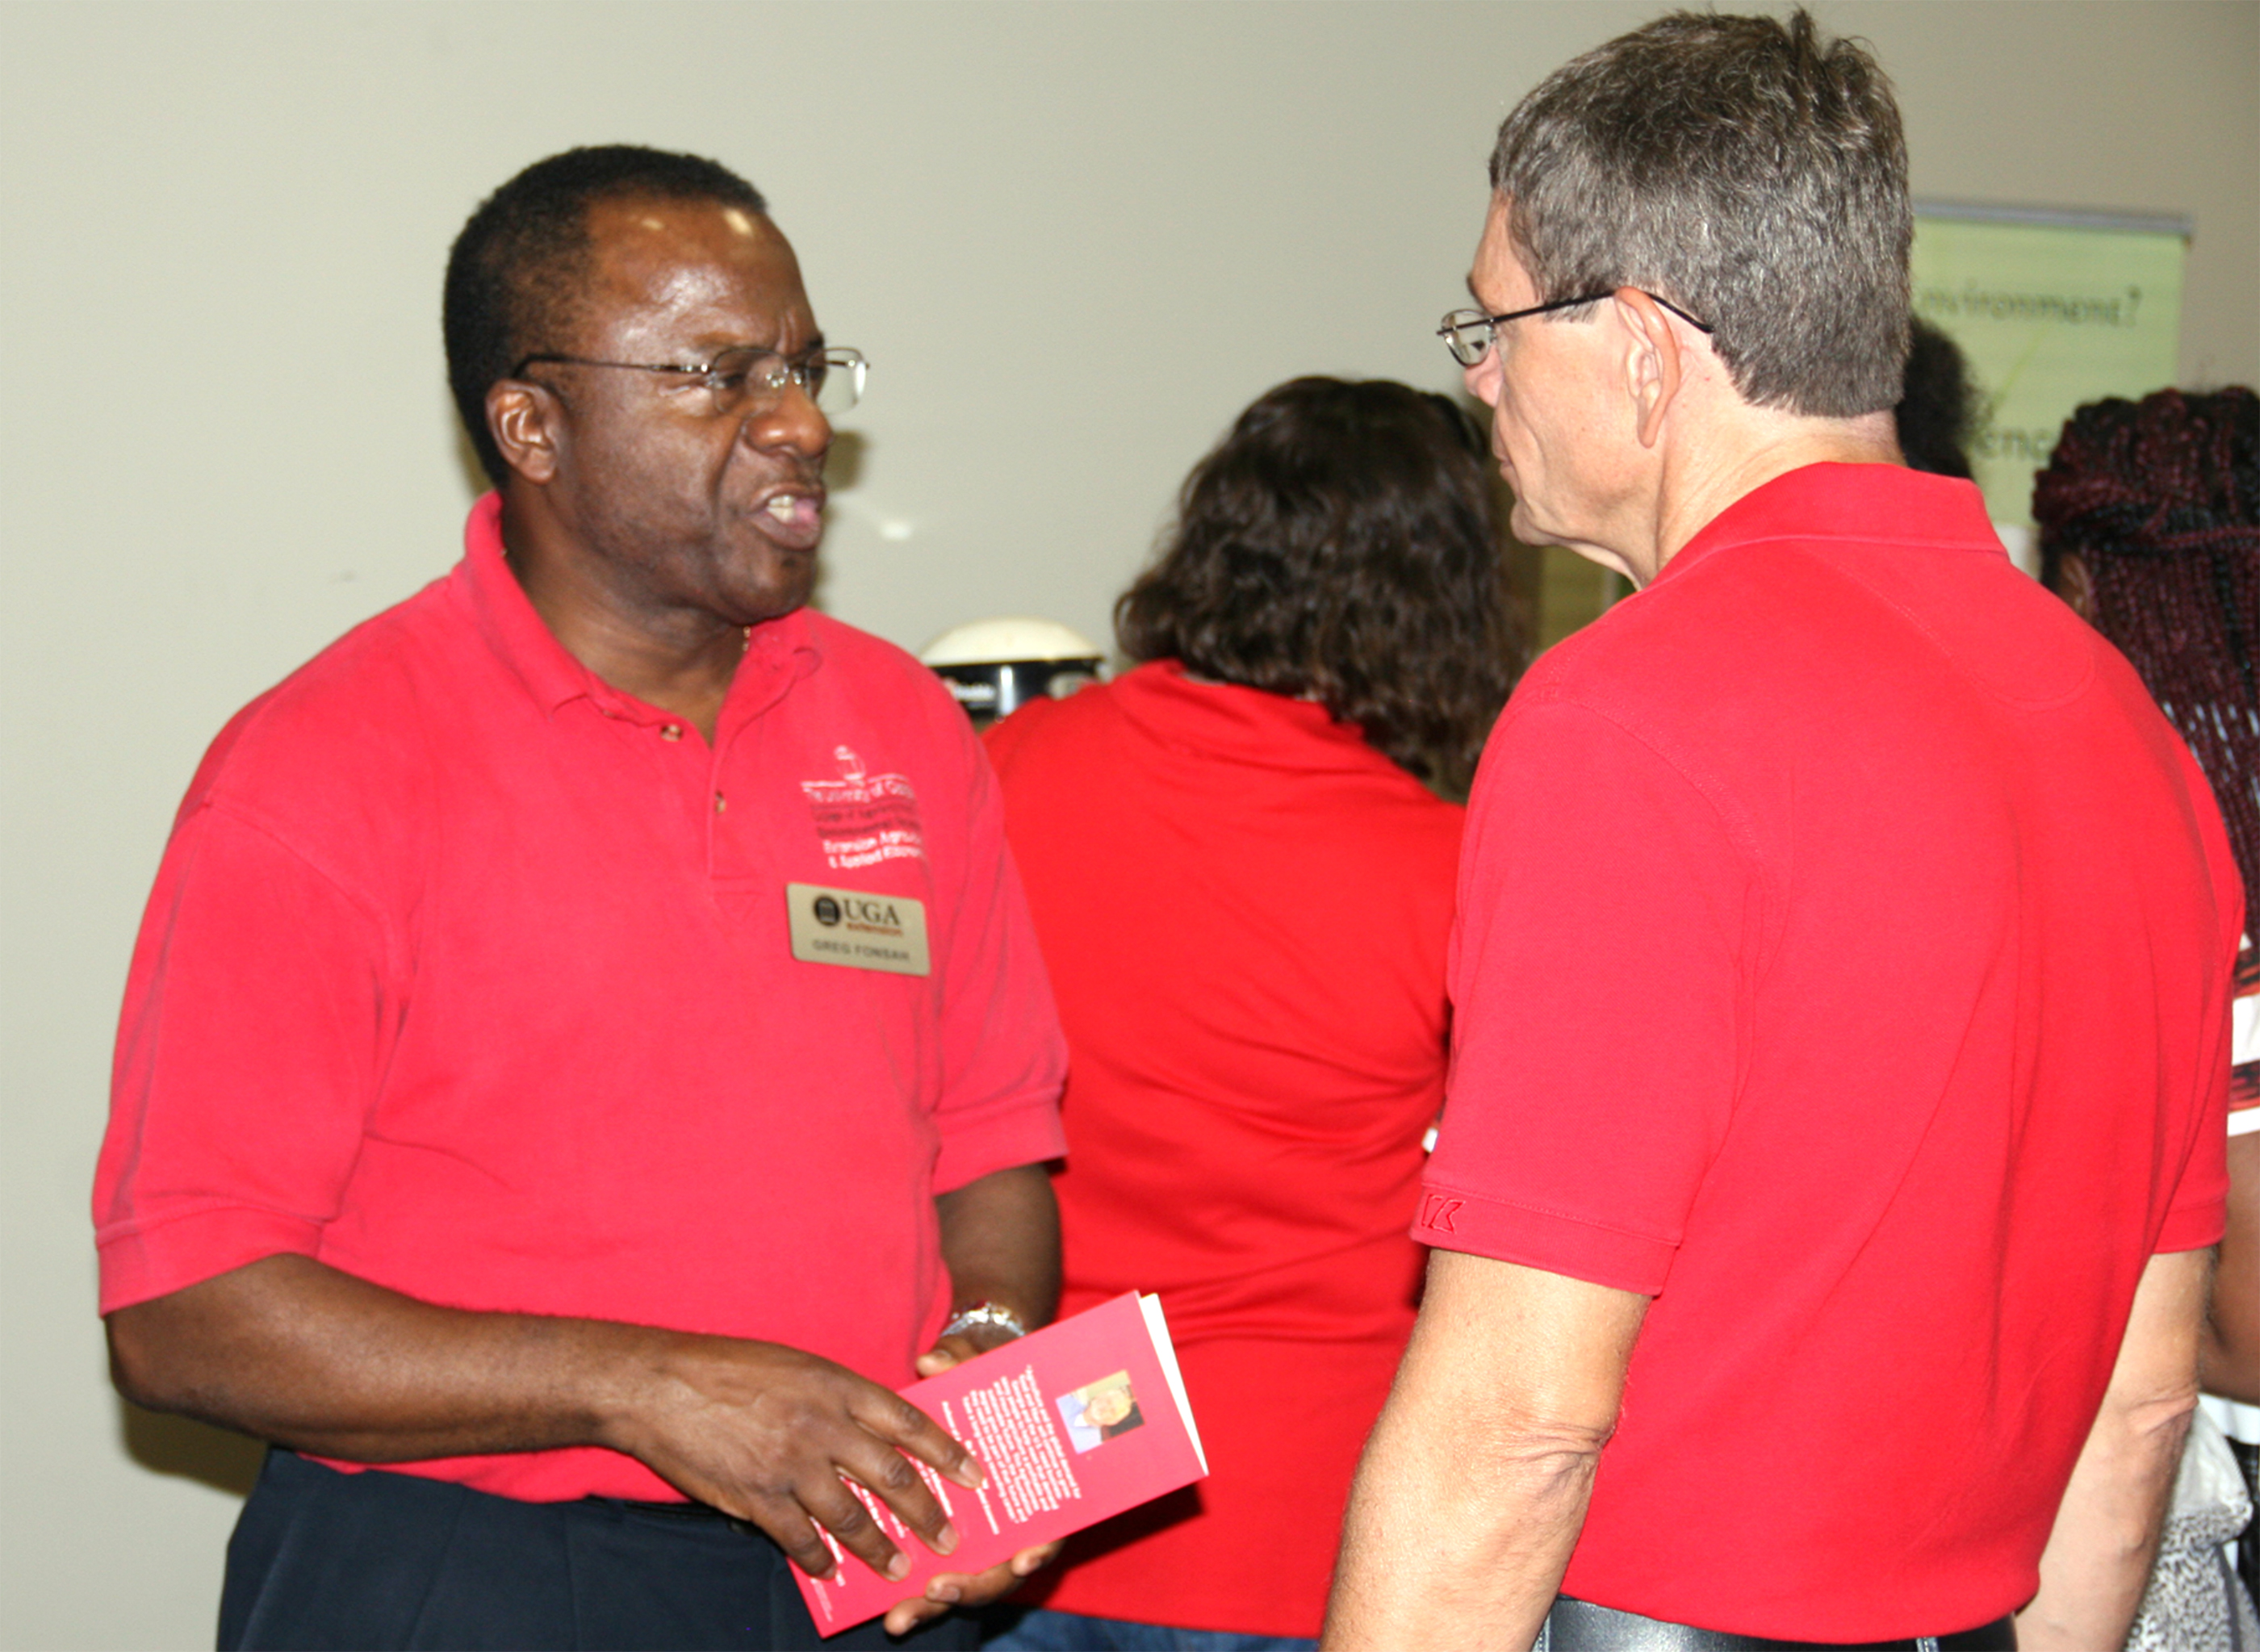 UGA-Tifton professors Greg Fonsah and George Vellidis during the Southwest ShowCAES event in 2016.